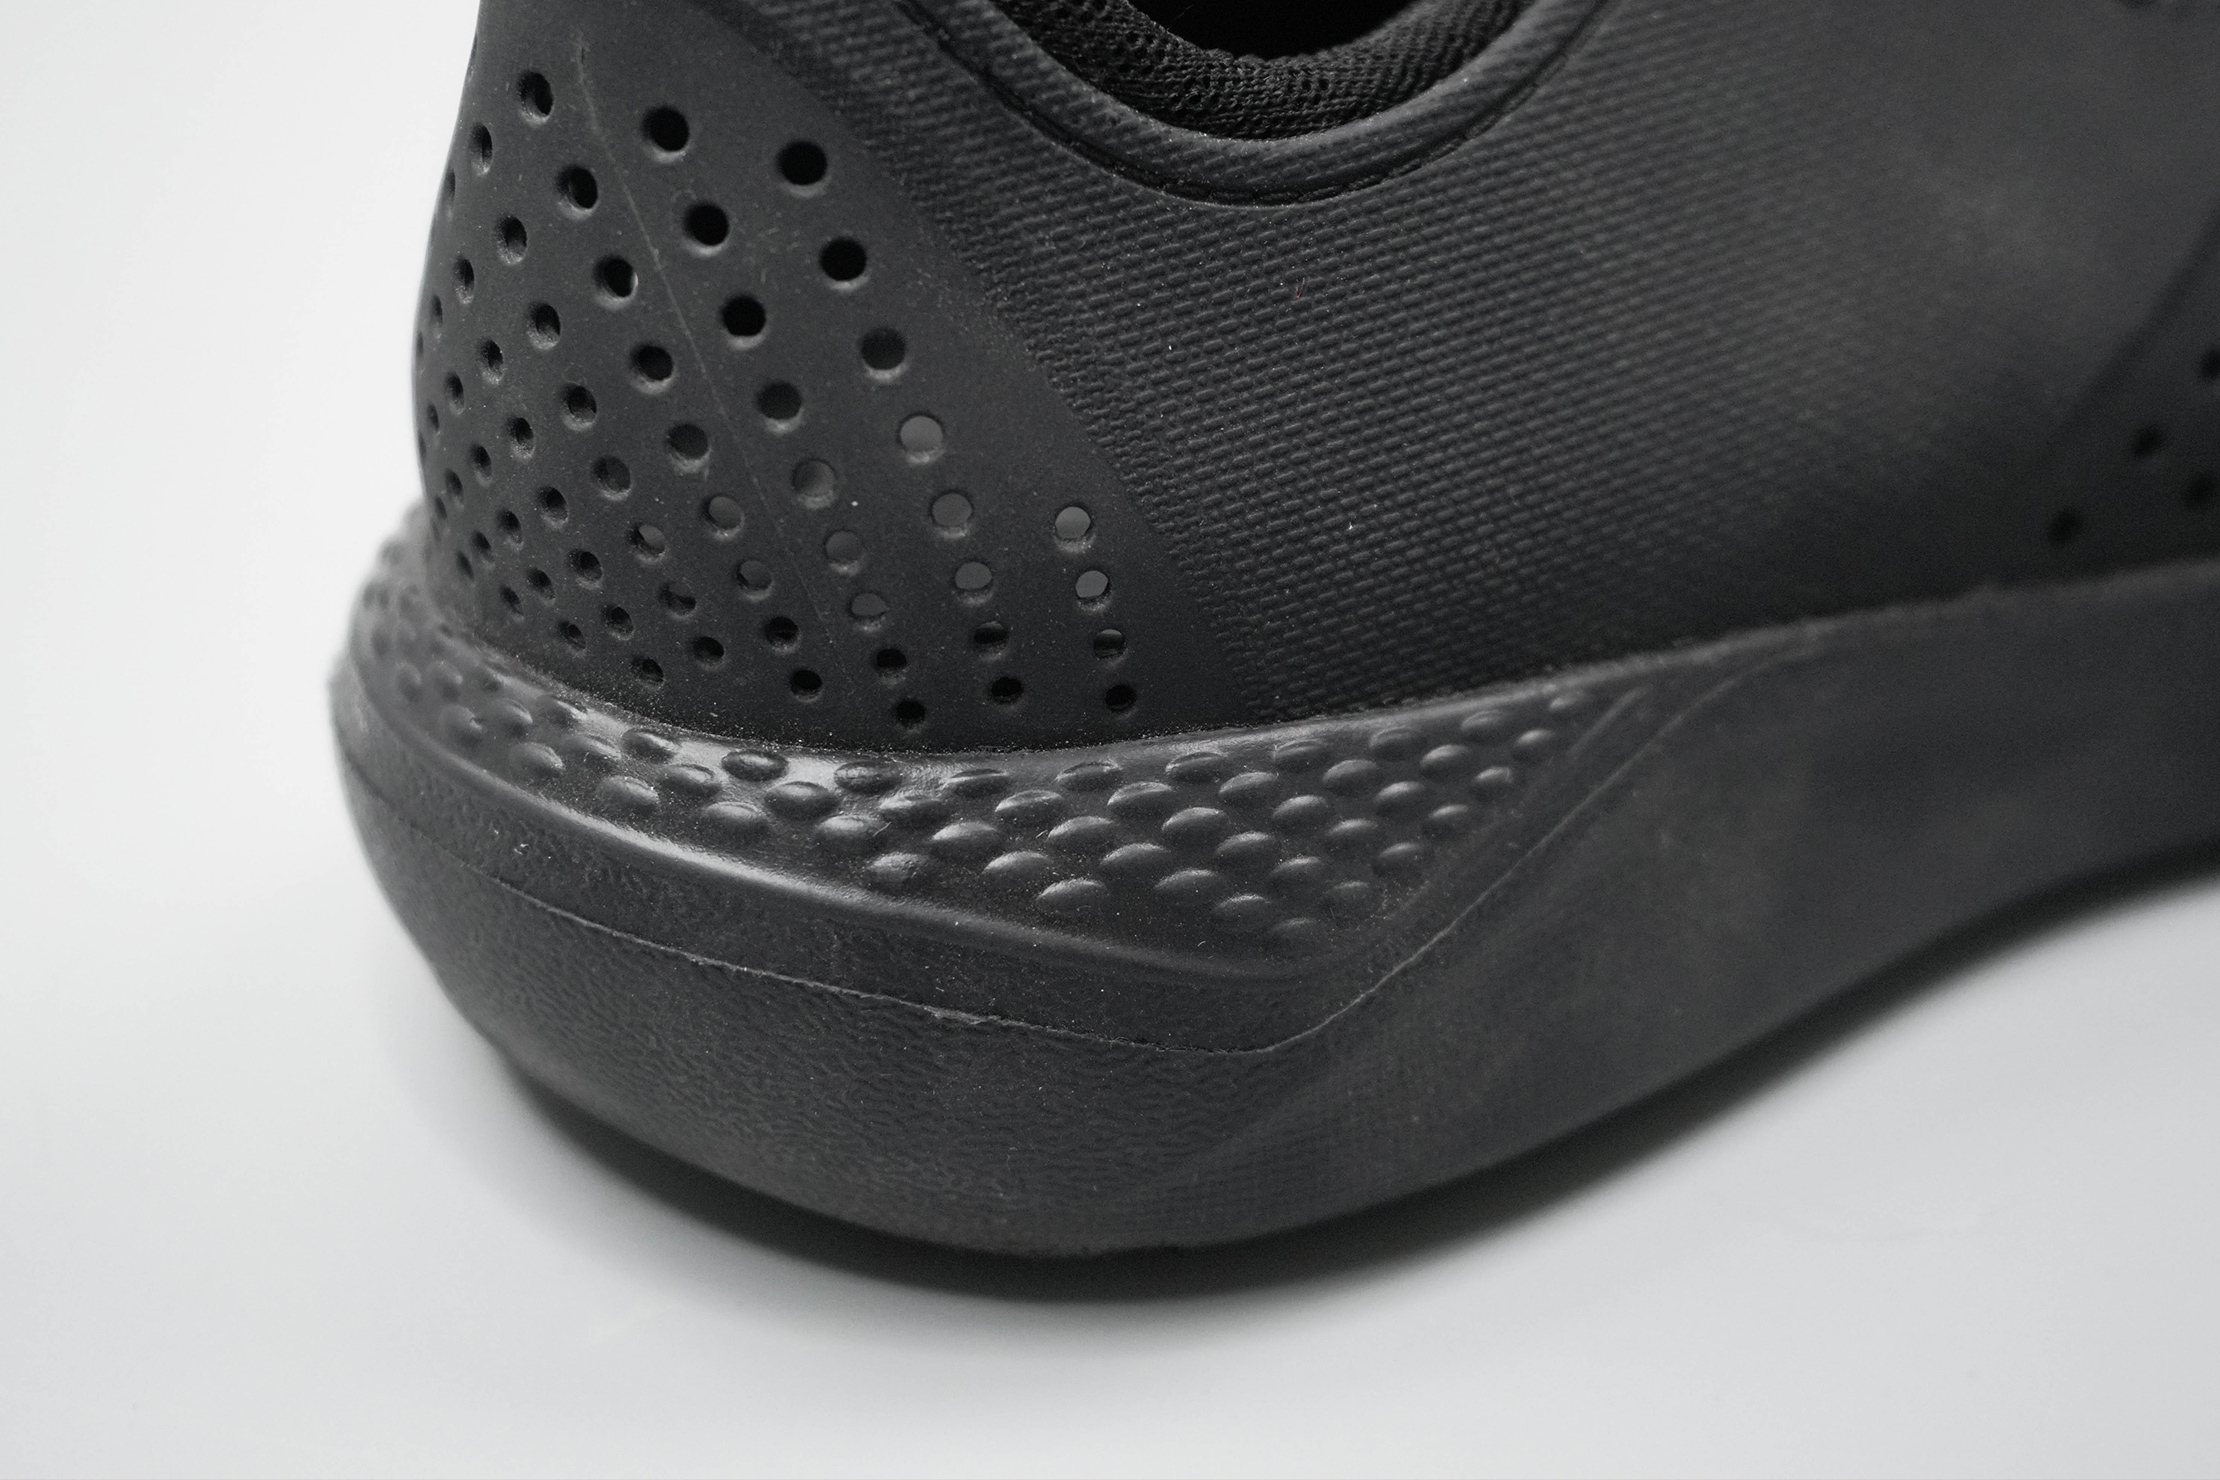 Crocs LiteRide Pacer Outsole